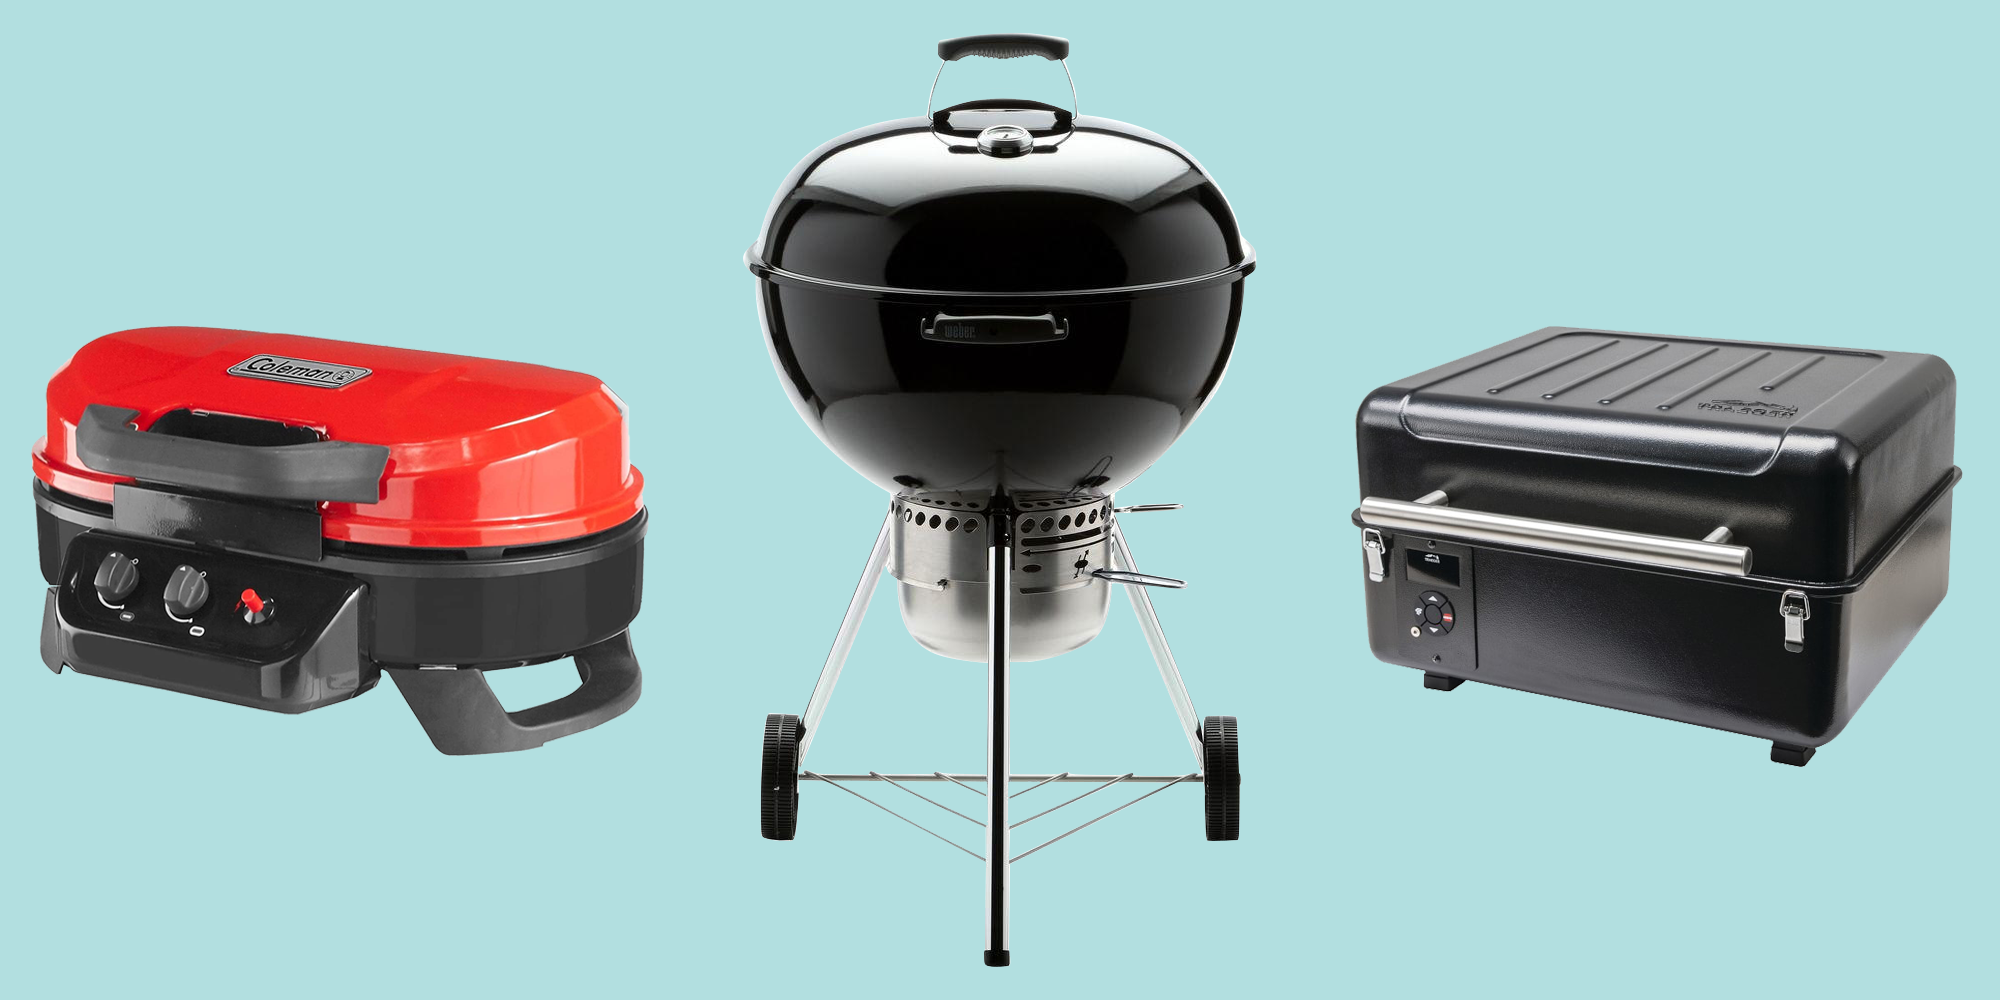 8 Best Grills to Buy 2021 - Top Gas, Charcoal, and Pellet Grill Reviews